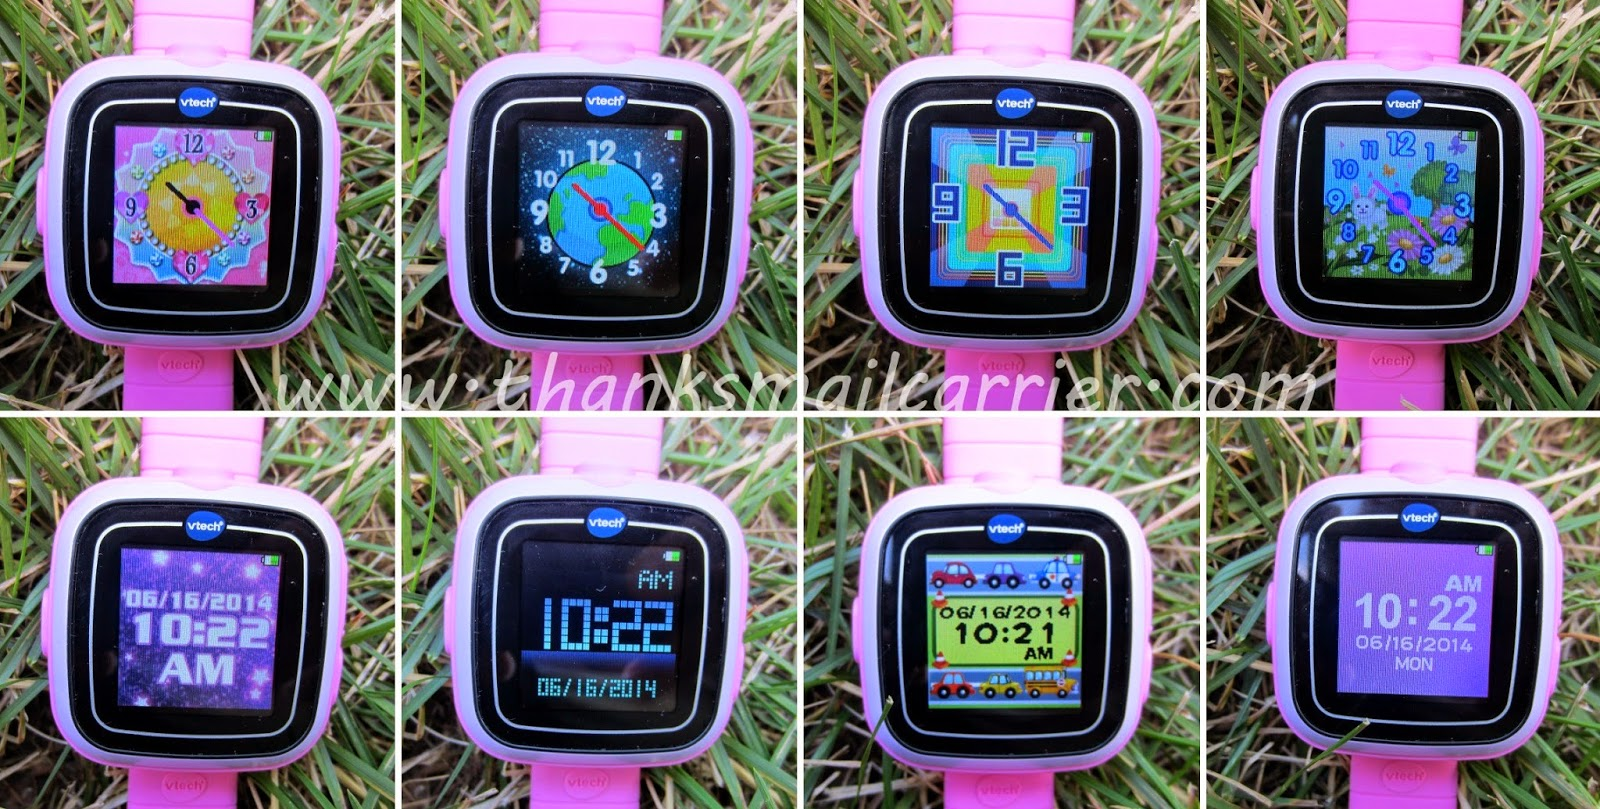 VTech kids watch faces